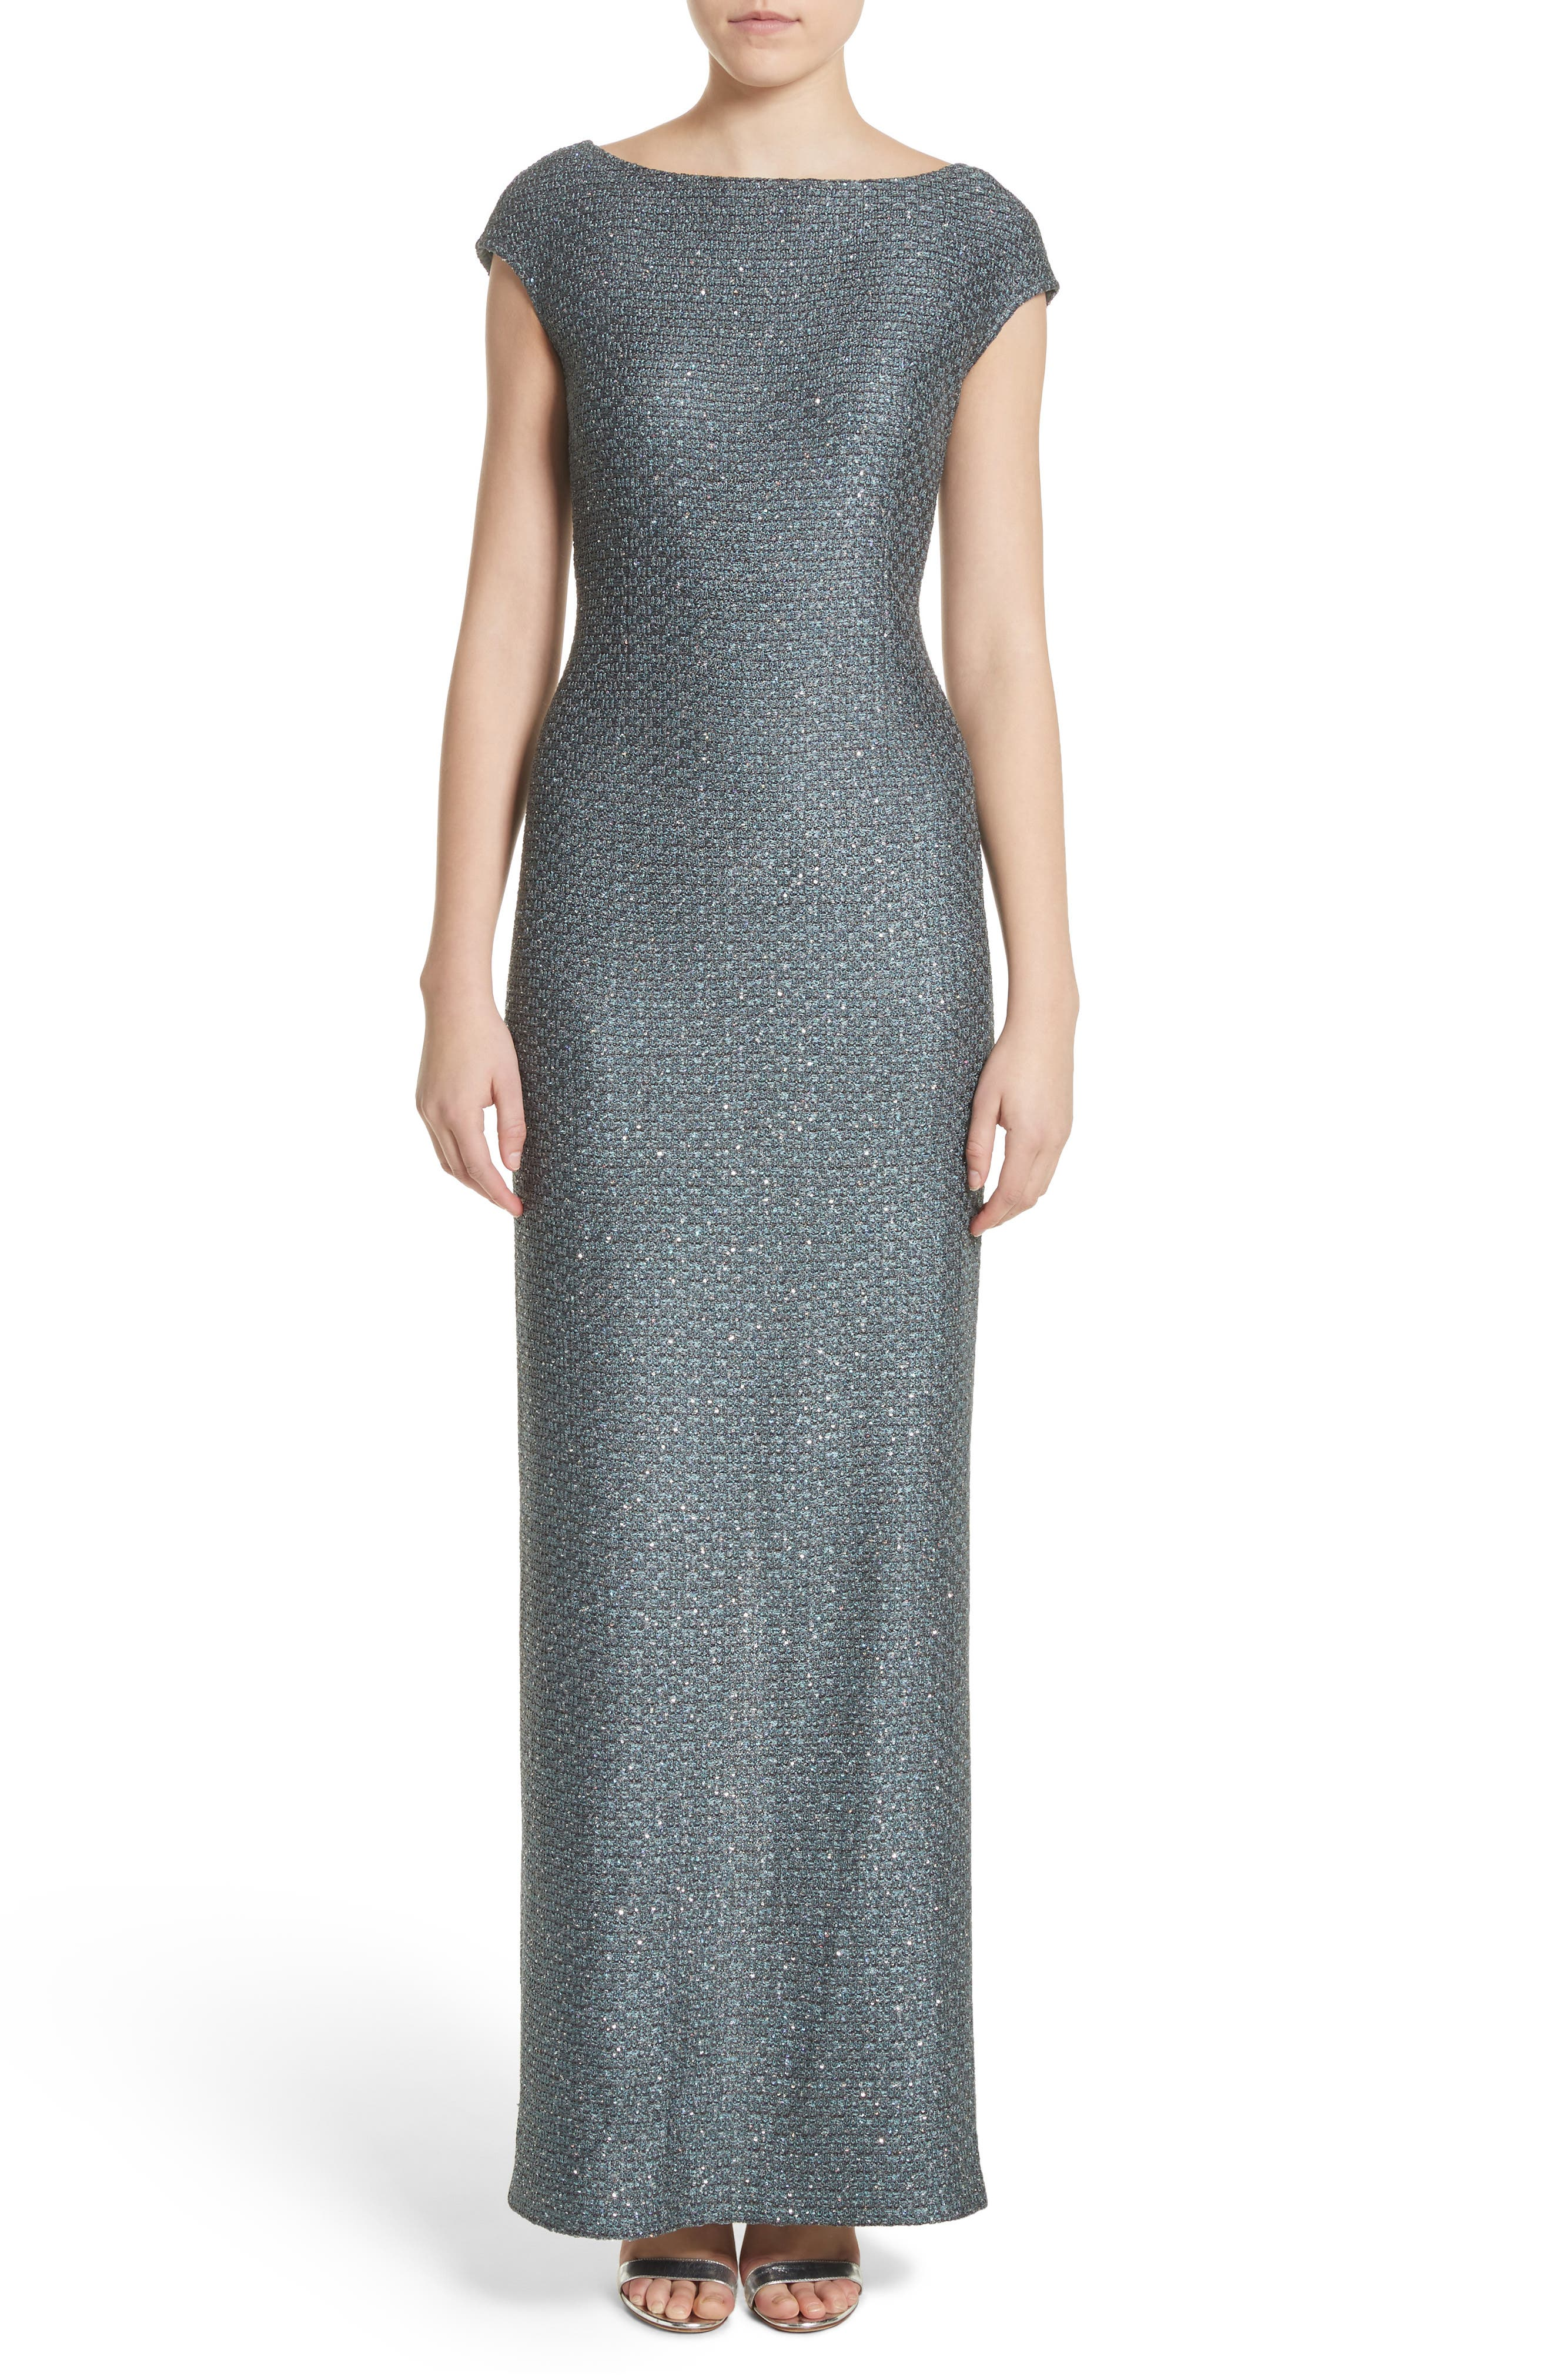 St. John Evening Spark Sequin Hansh Knit Column Gown